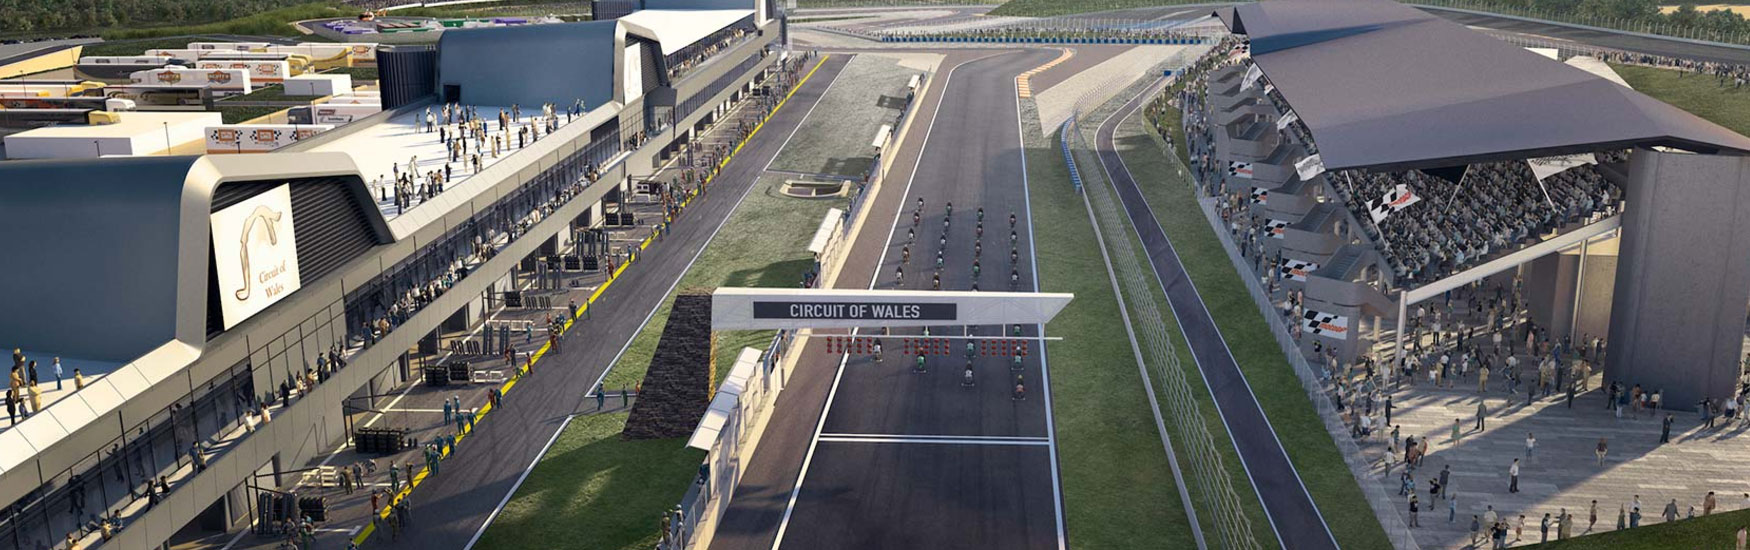 circuit-of-wales-header.jpg